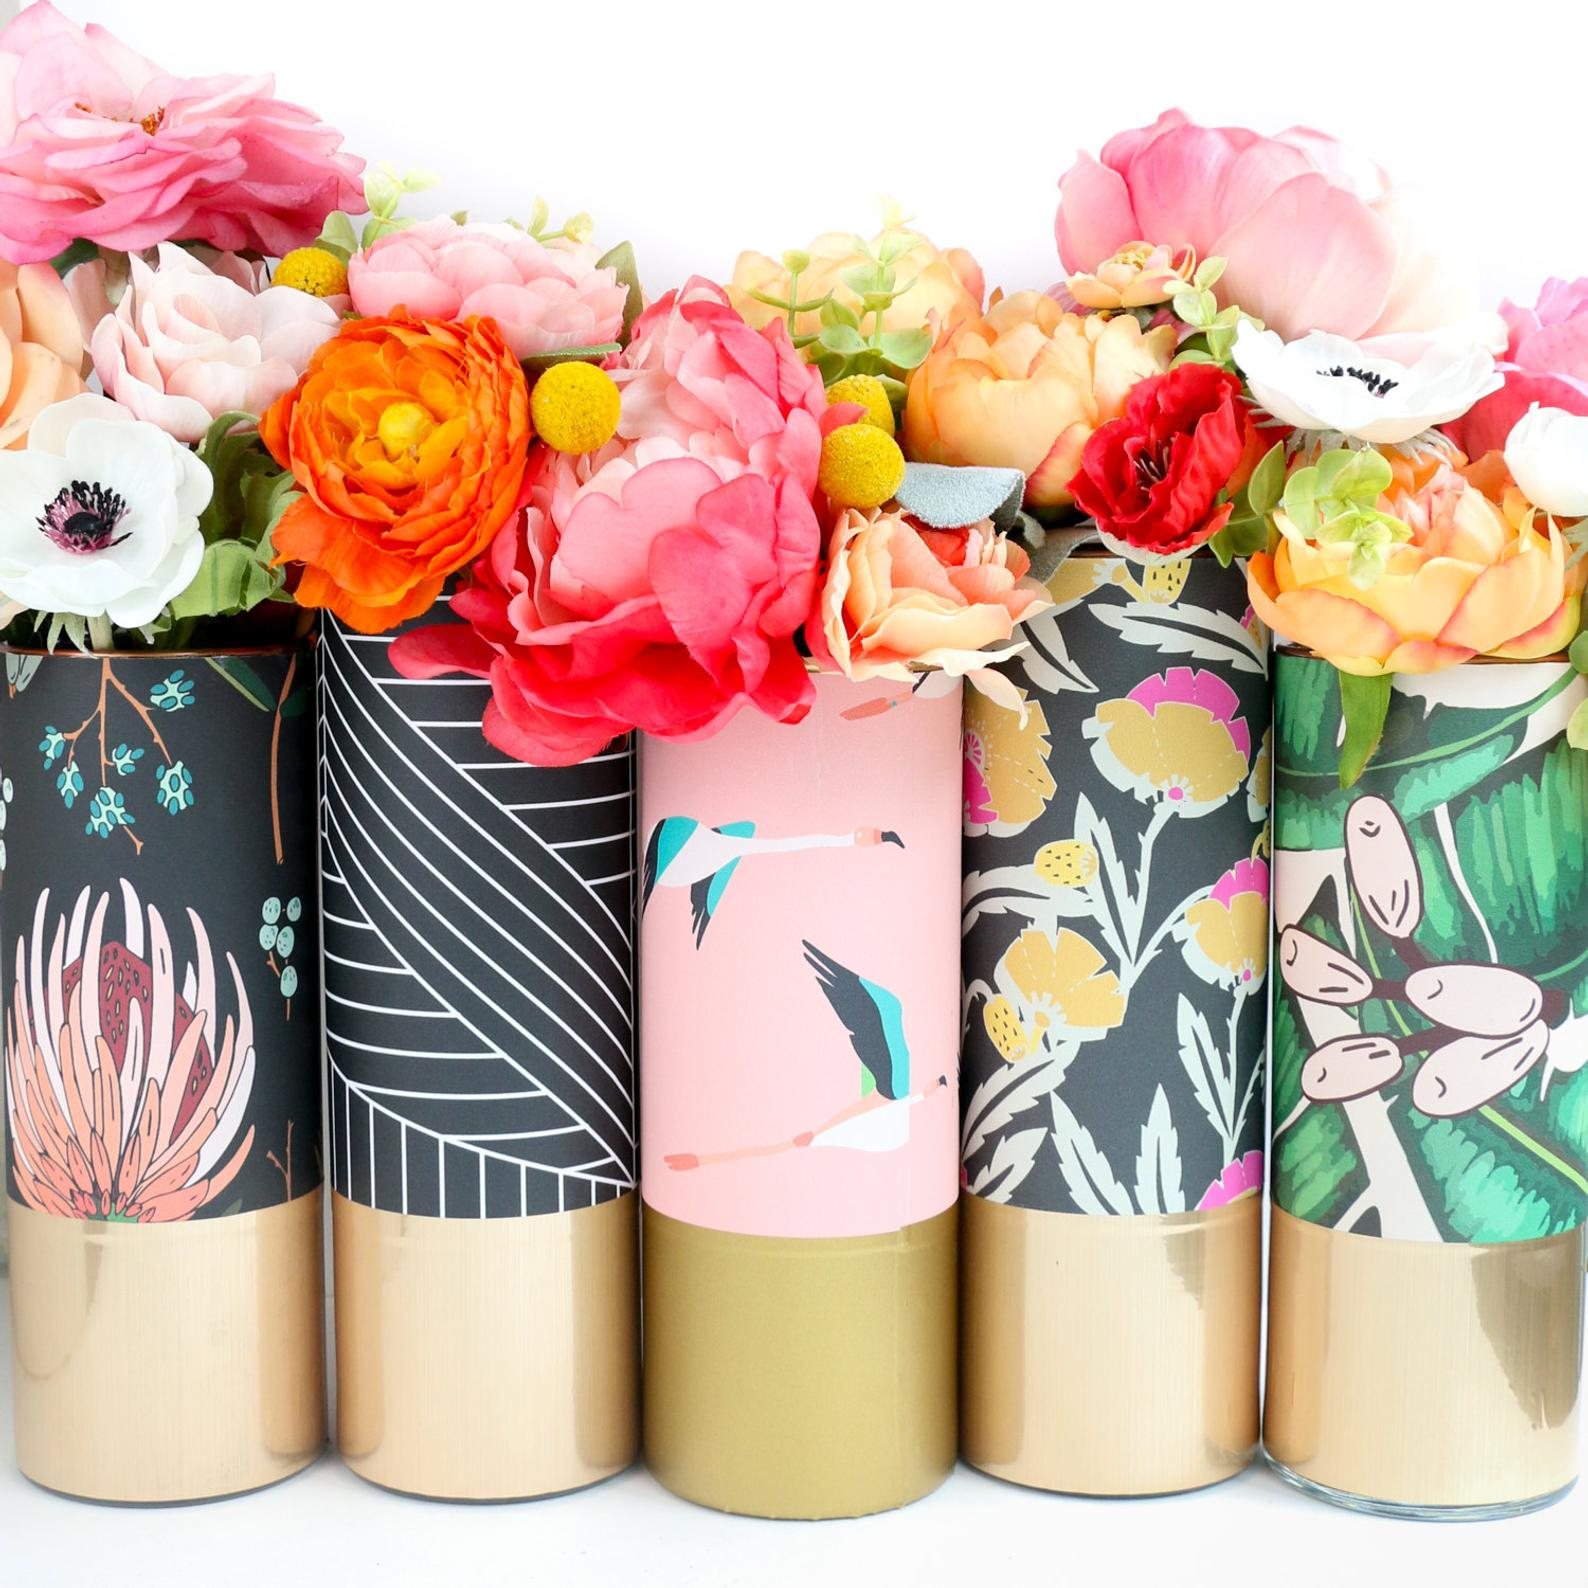 five vases with different patterns filled with flowers